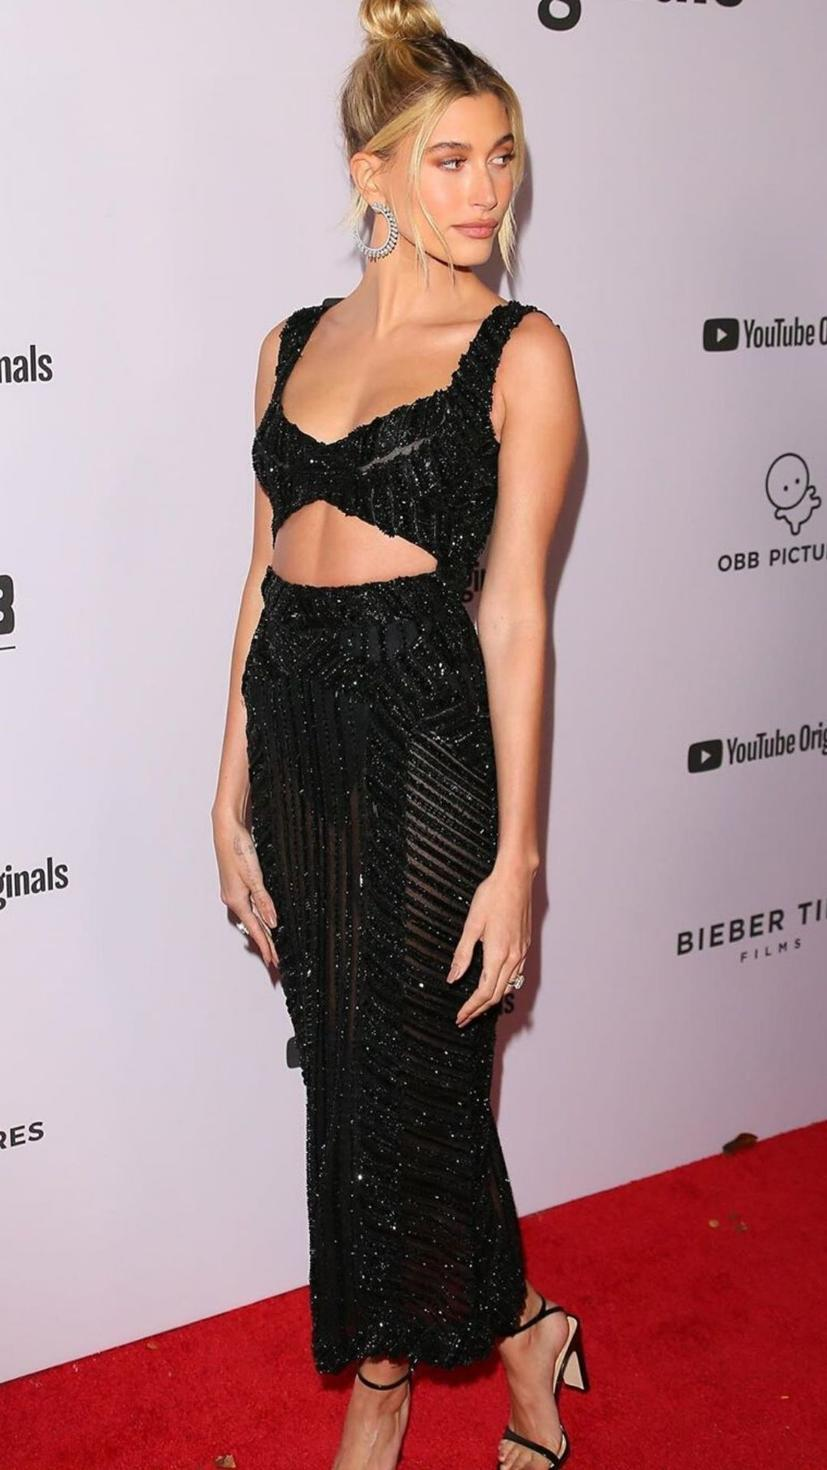 Hailey Bieber wore Zuhair Murad Couture to the premiere of her husband Justin Bieber's new series 'Justin Bieber: Seasons'